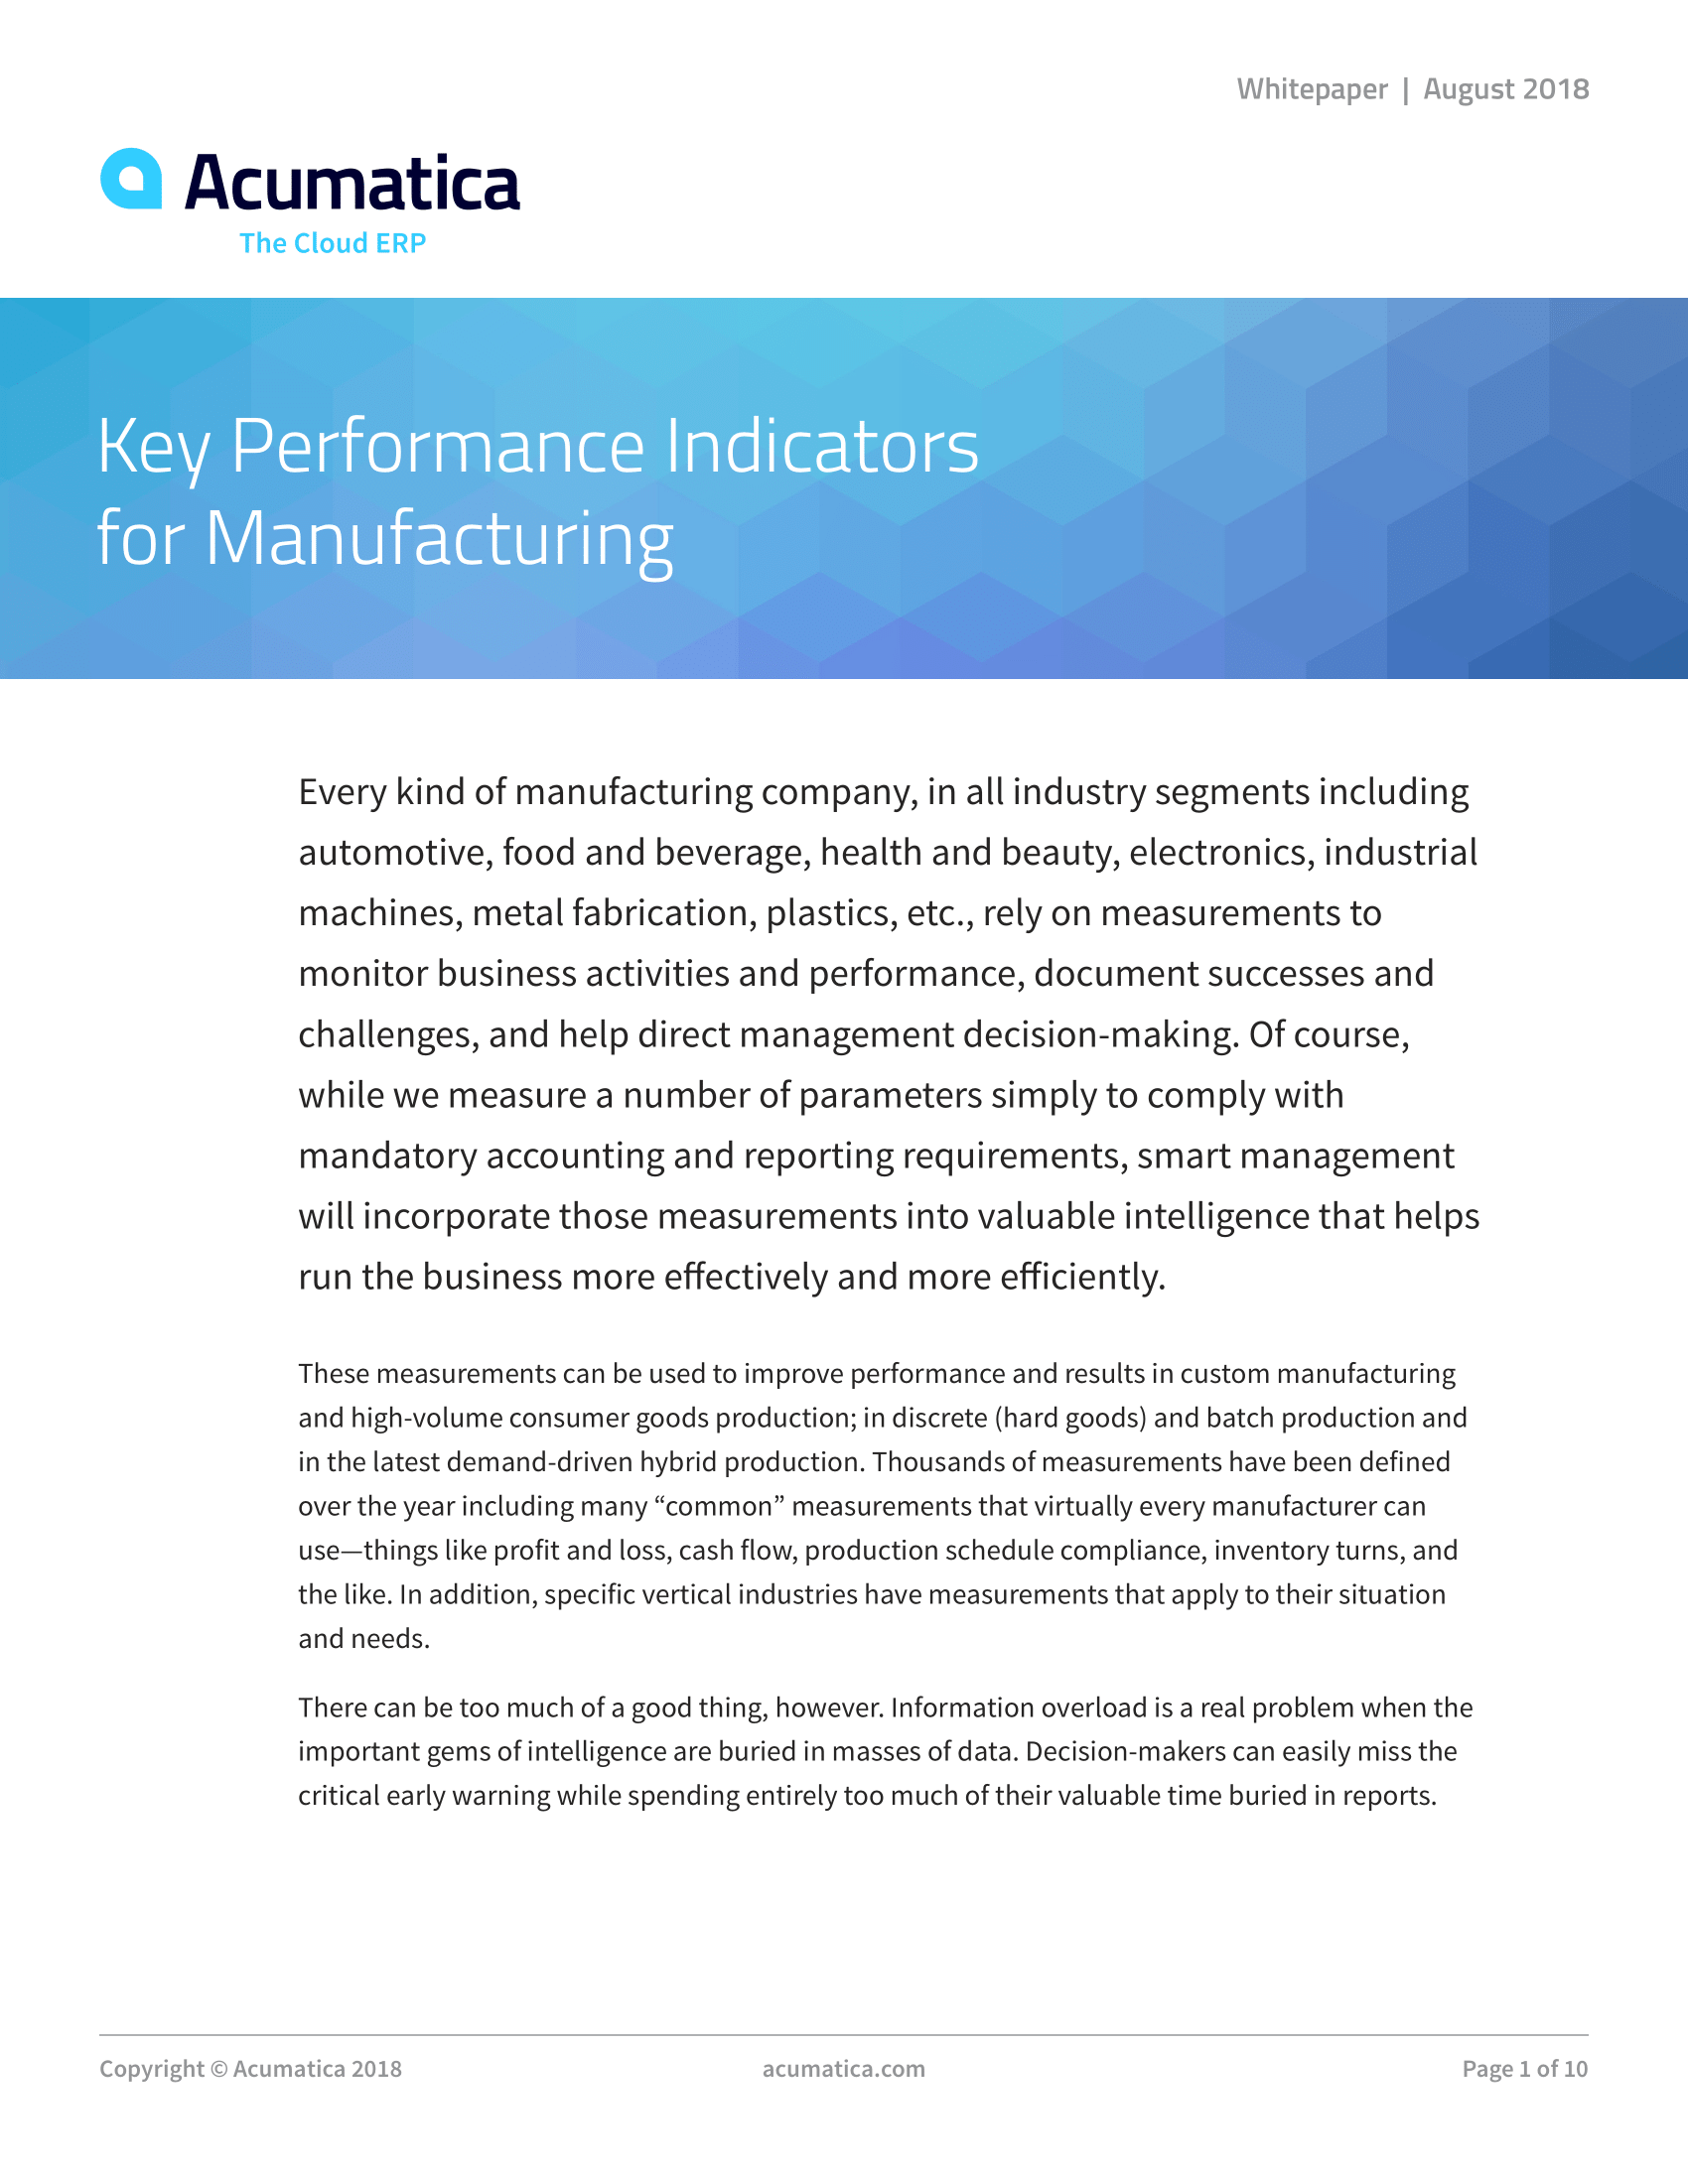 Key Performance Indicators for Manufacturing, page 0